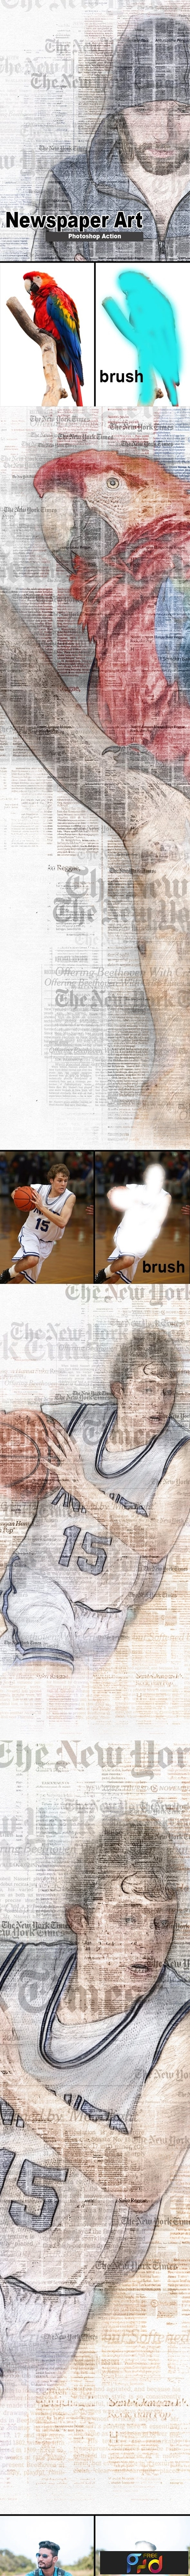 Amazing Newspaper Art Photoshop Action 23310693 1